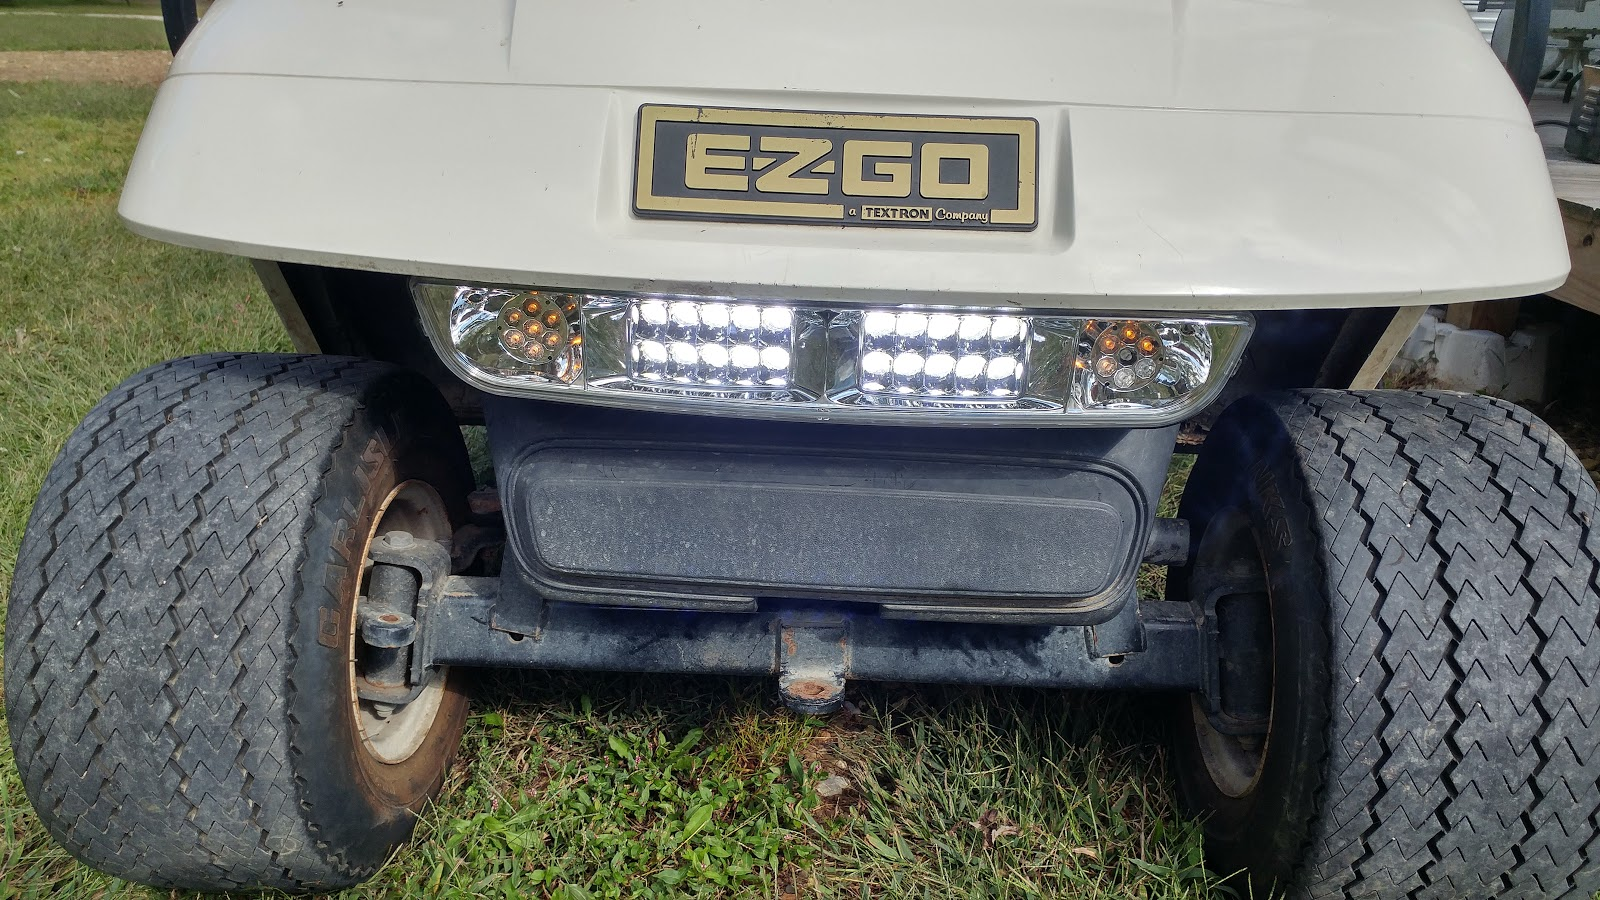 Golf Cart Lights Frequently Asked Questions Faq 1997 Ezgo Turn Signal Wiring Diagram 20160930 154321 Hdr